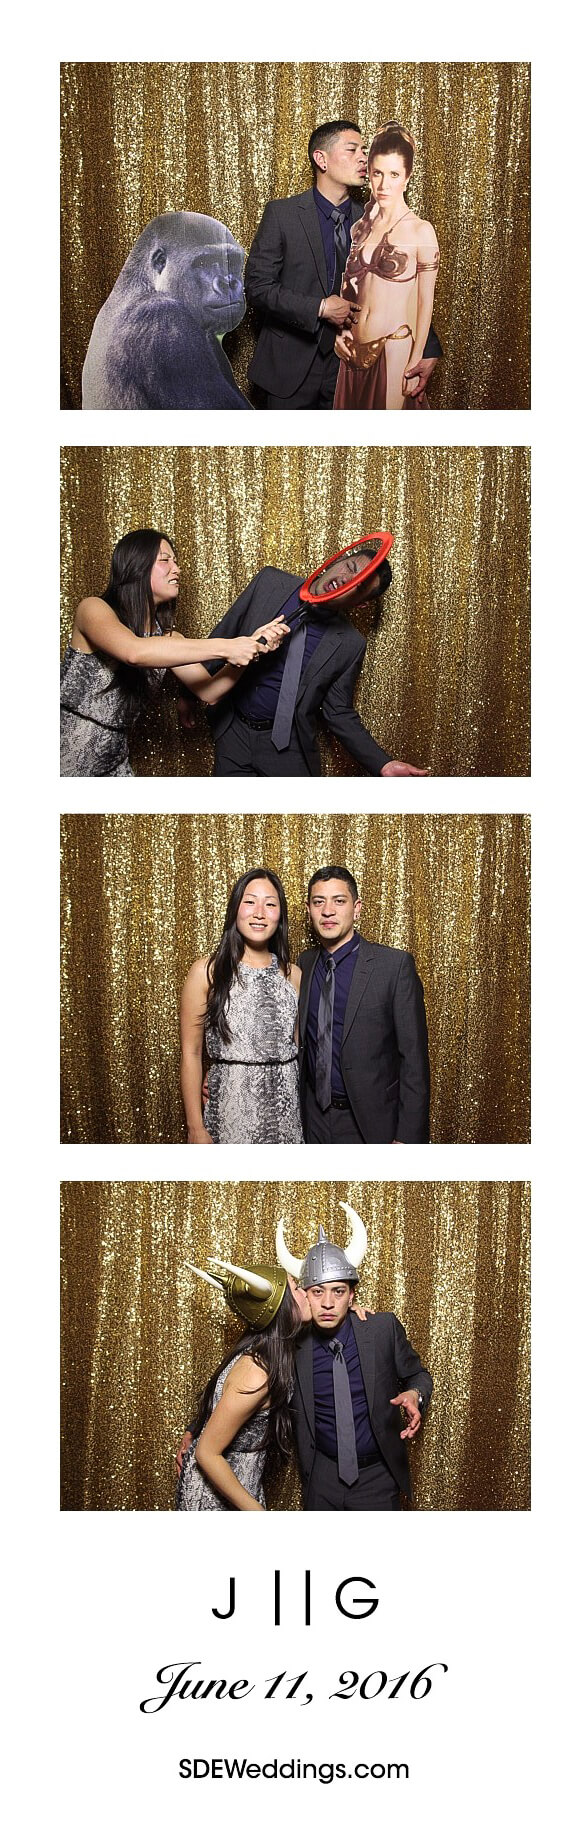 Toronto Four Seasons Hotel Wedding Photo Booth Rental 11